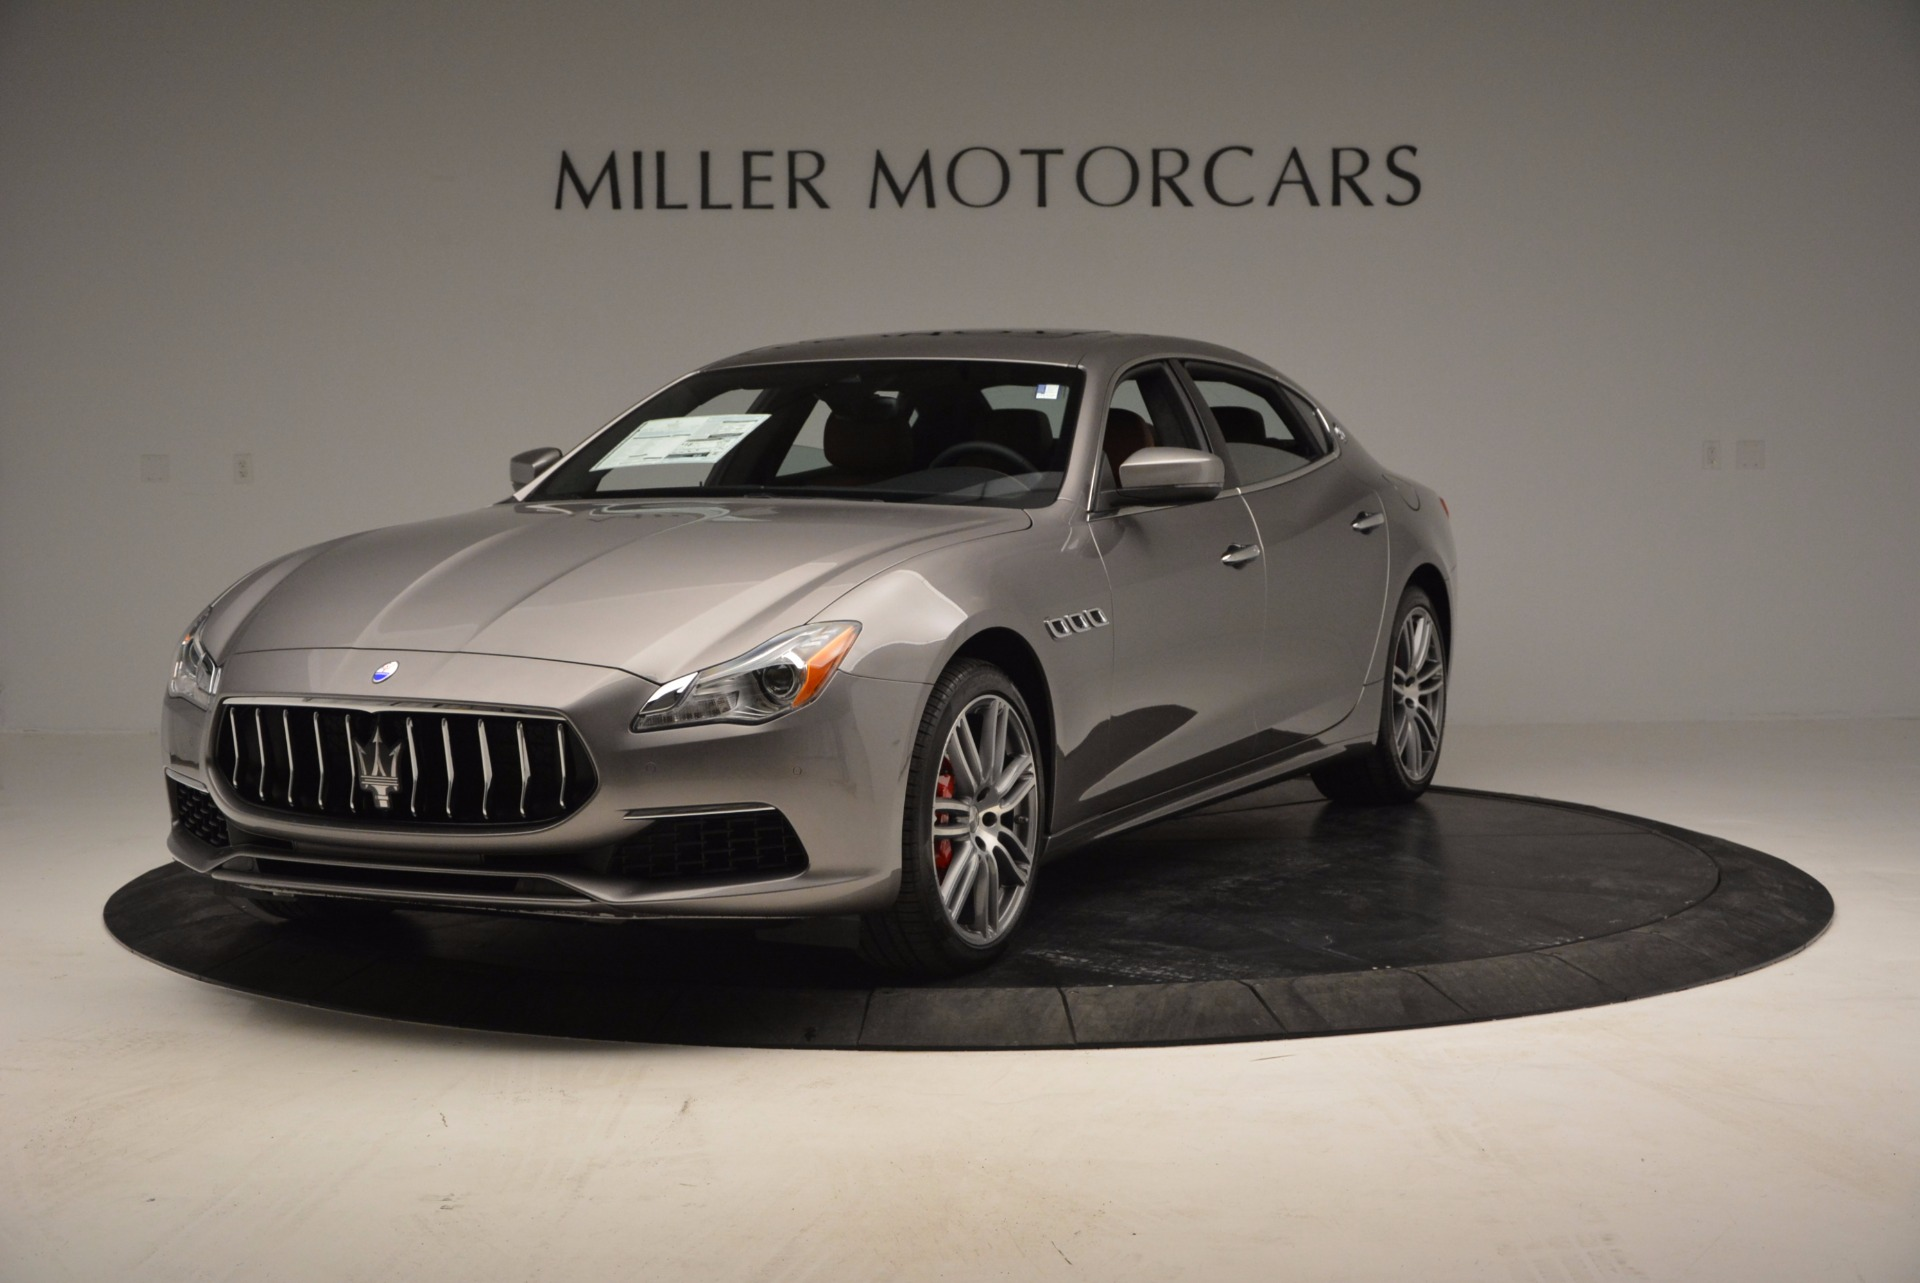 New 2017 Maserati Quattroporte S Q4 GranLusso for sale Sold at Maserati of Westport in Westport CT 06880 1